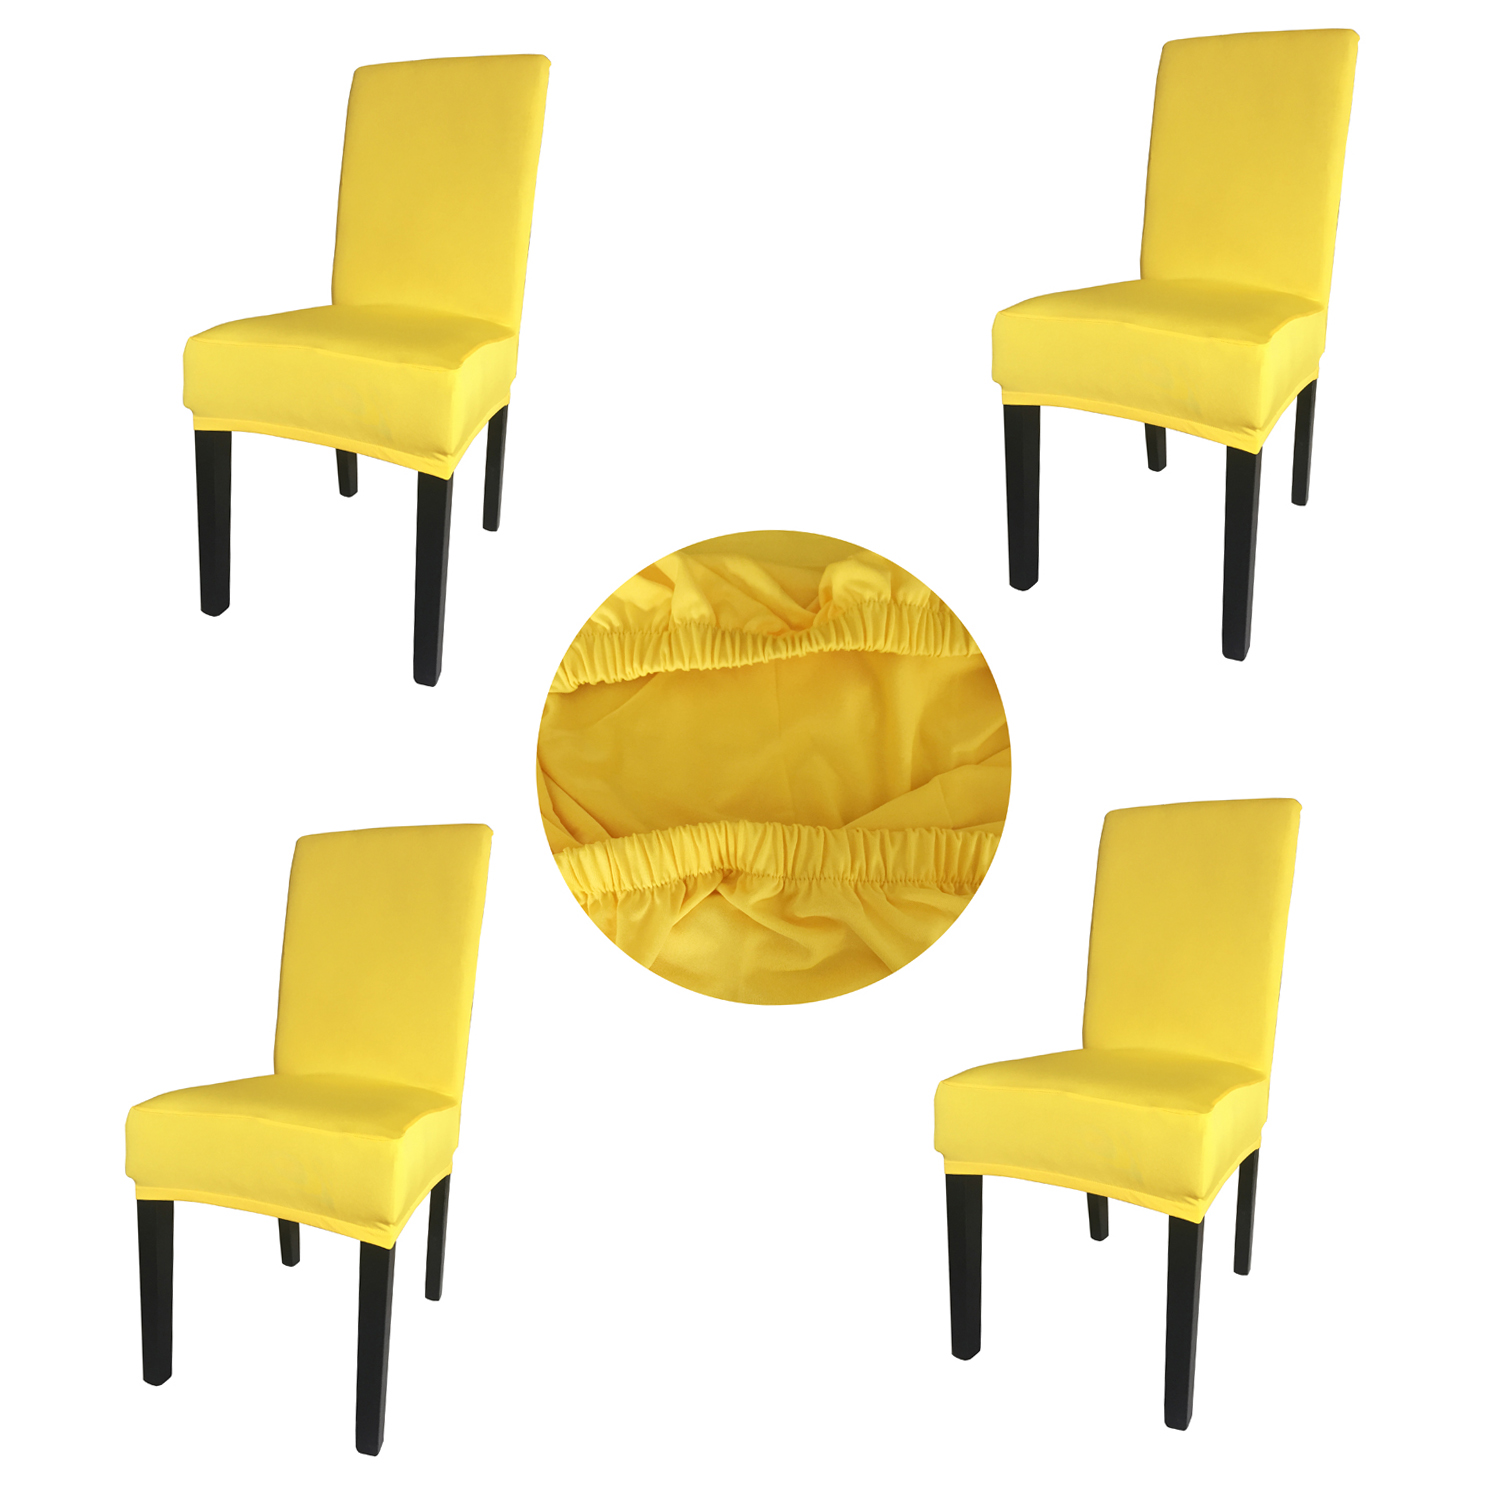 Wholesales 4 Pieces Yellow Spandex Fabric Stretch Removable Washable Dining Room Chair Cover Protector Seat Slipcovers SCS-4YL